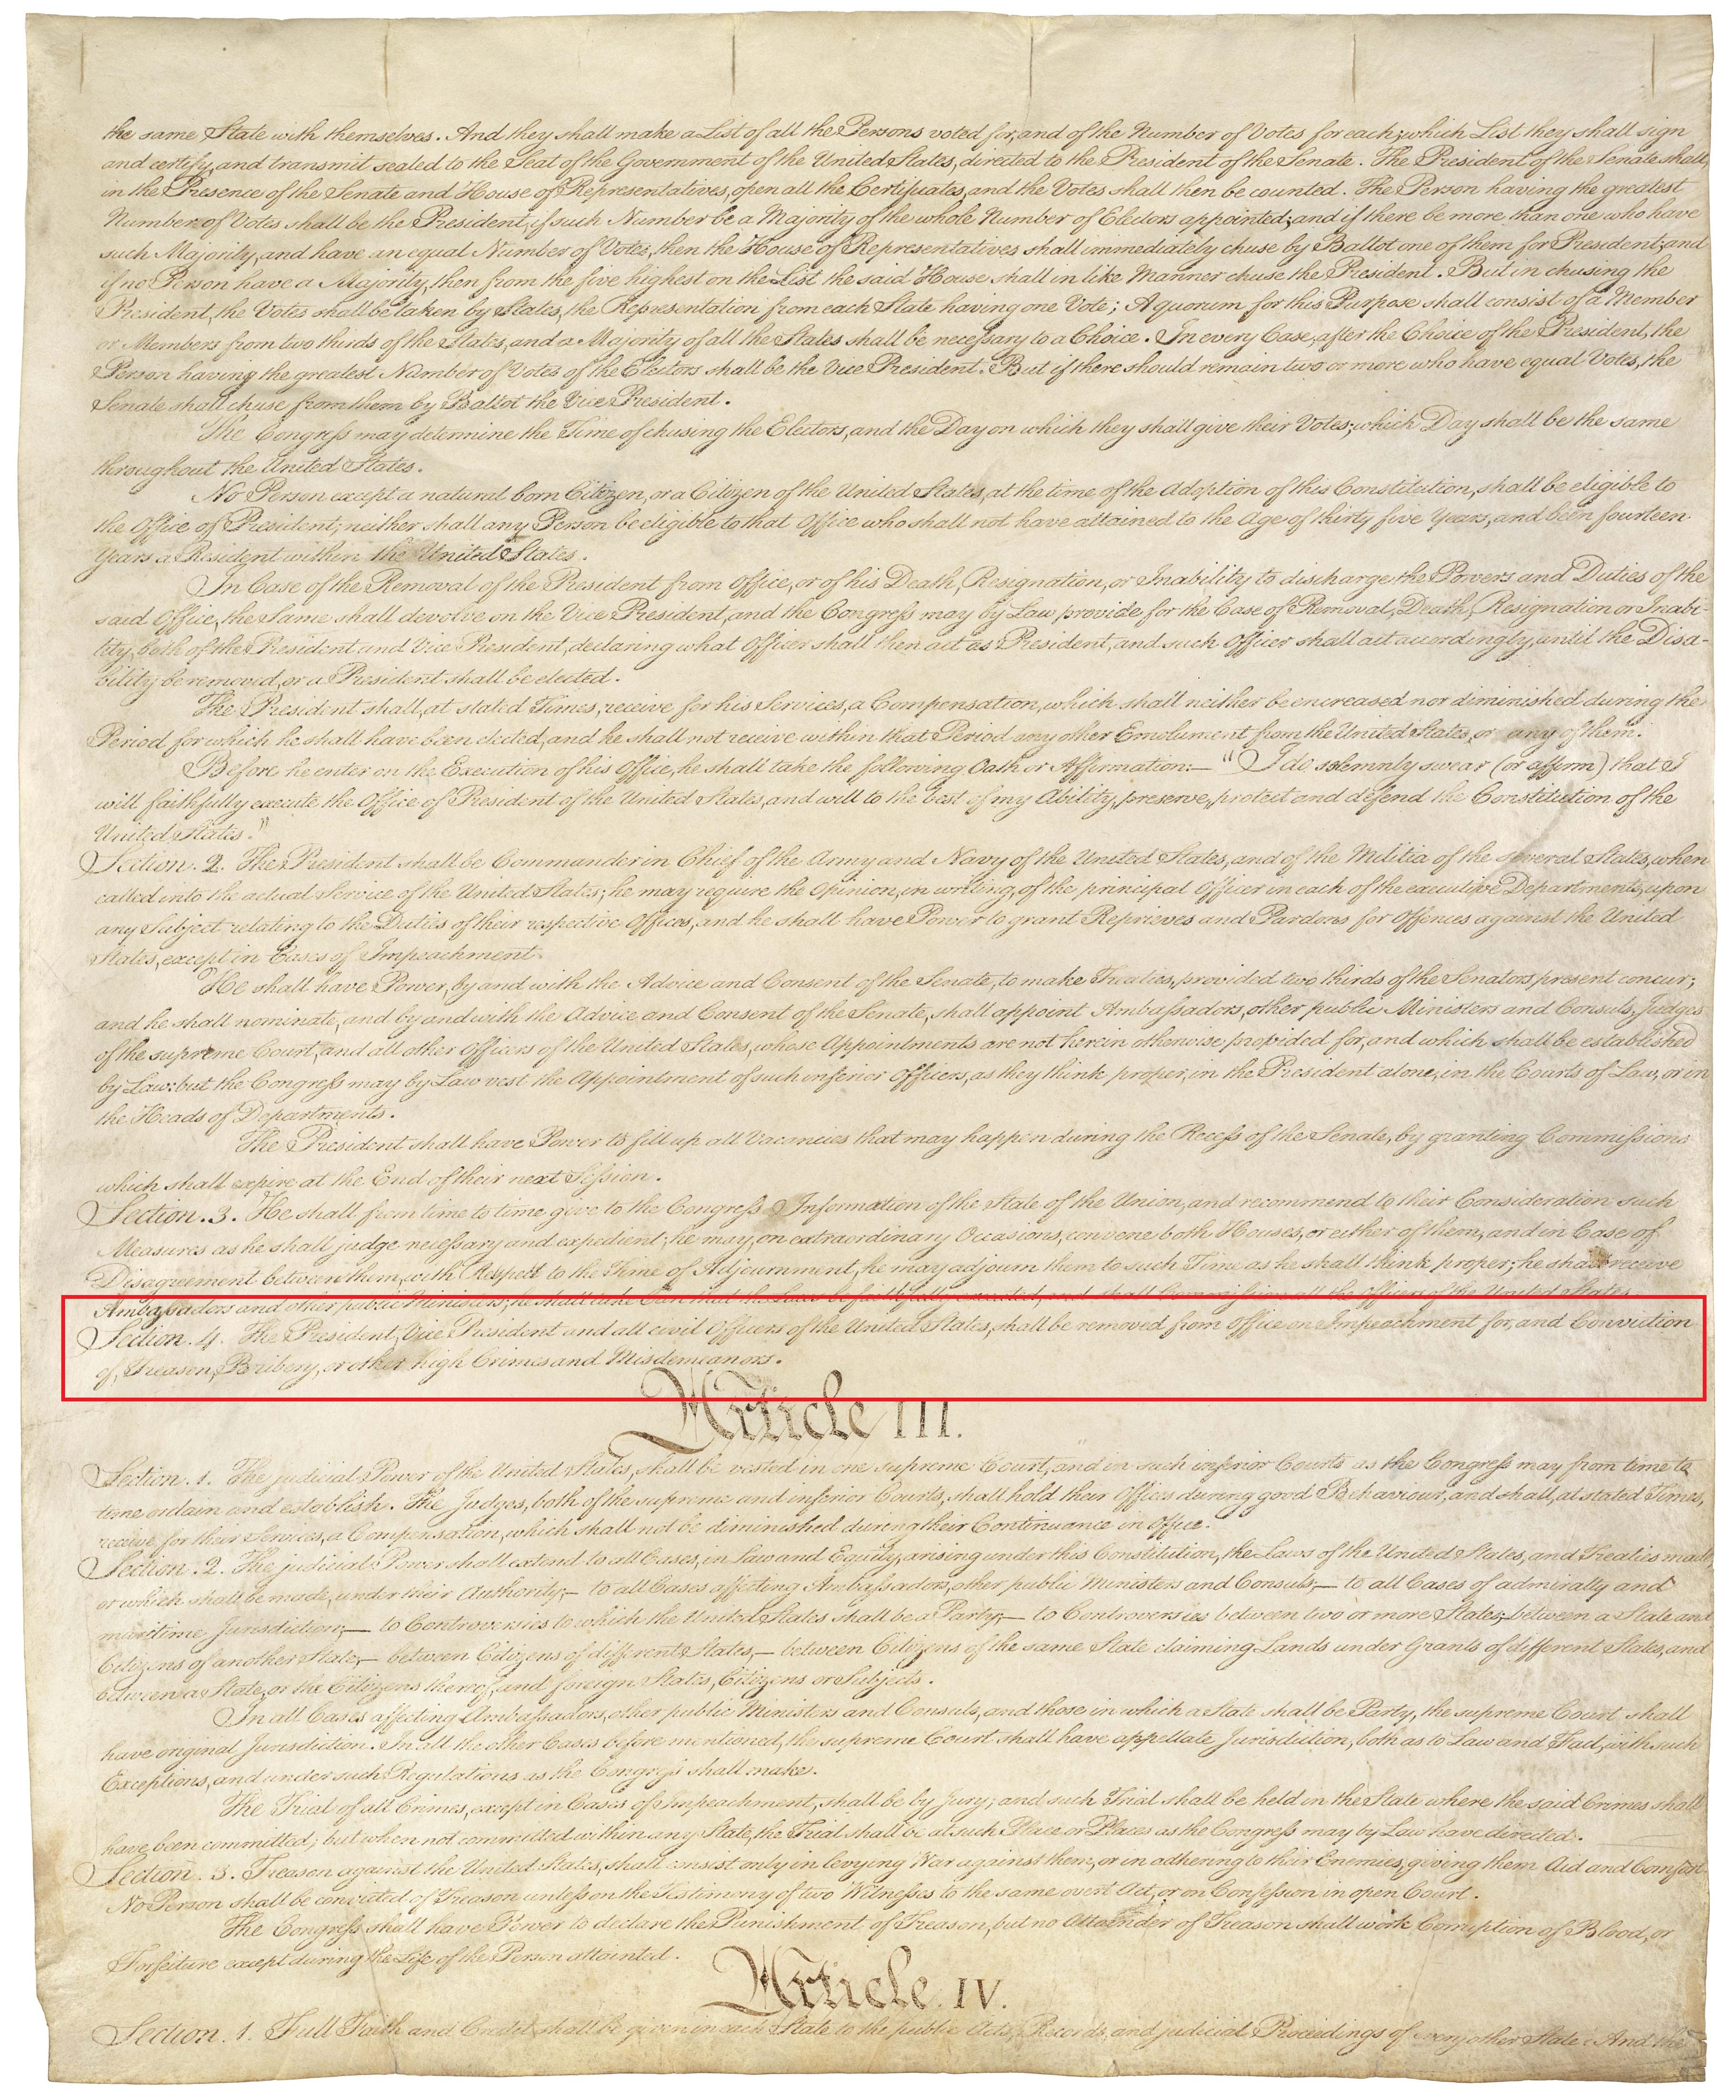 An old piece of paper with illegible cursive writing. About three quarters of the way down the page, one section is highlighted by a red box.